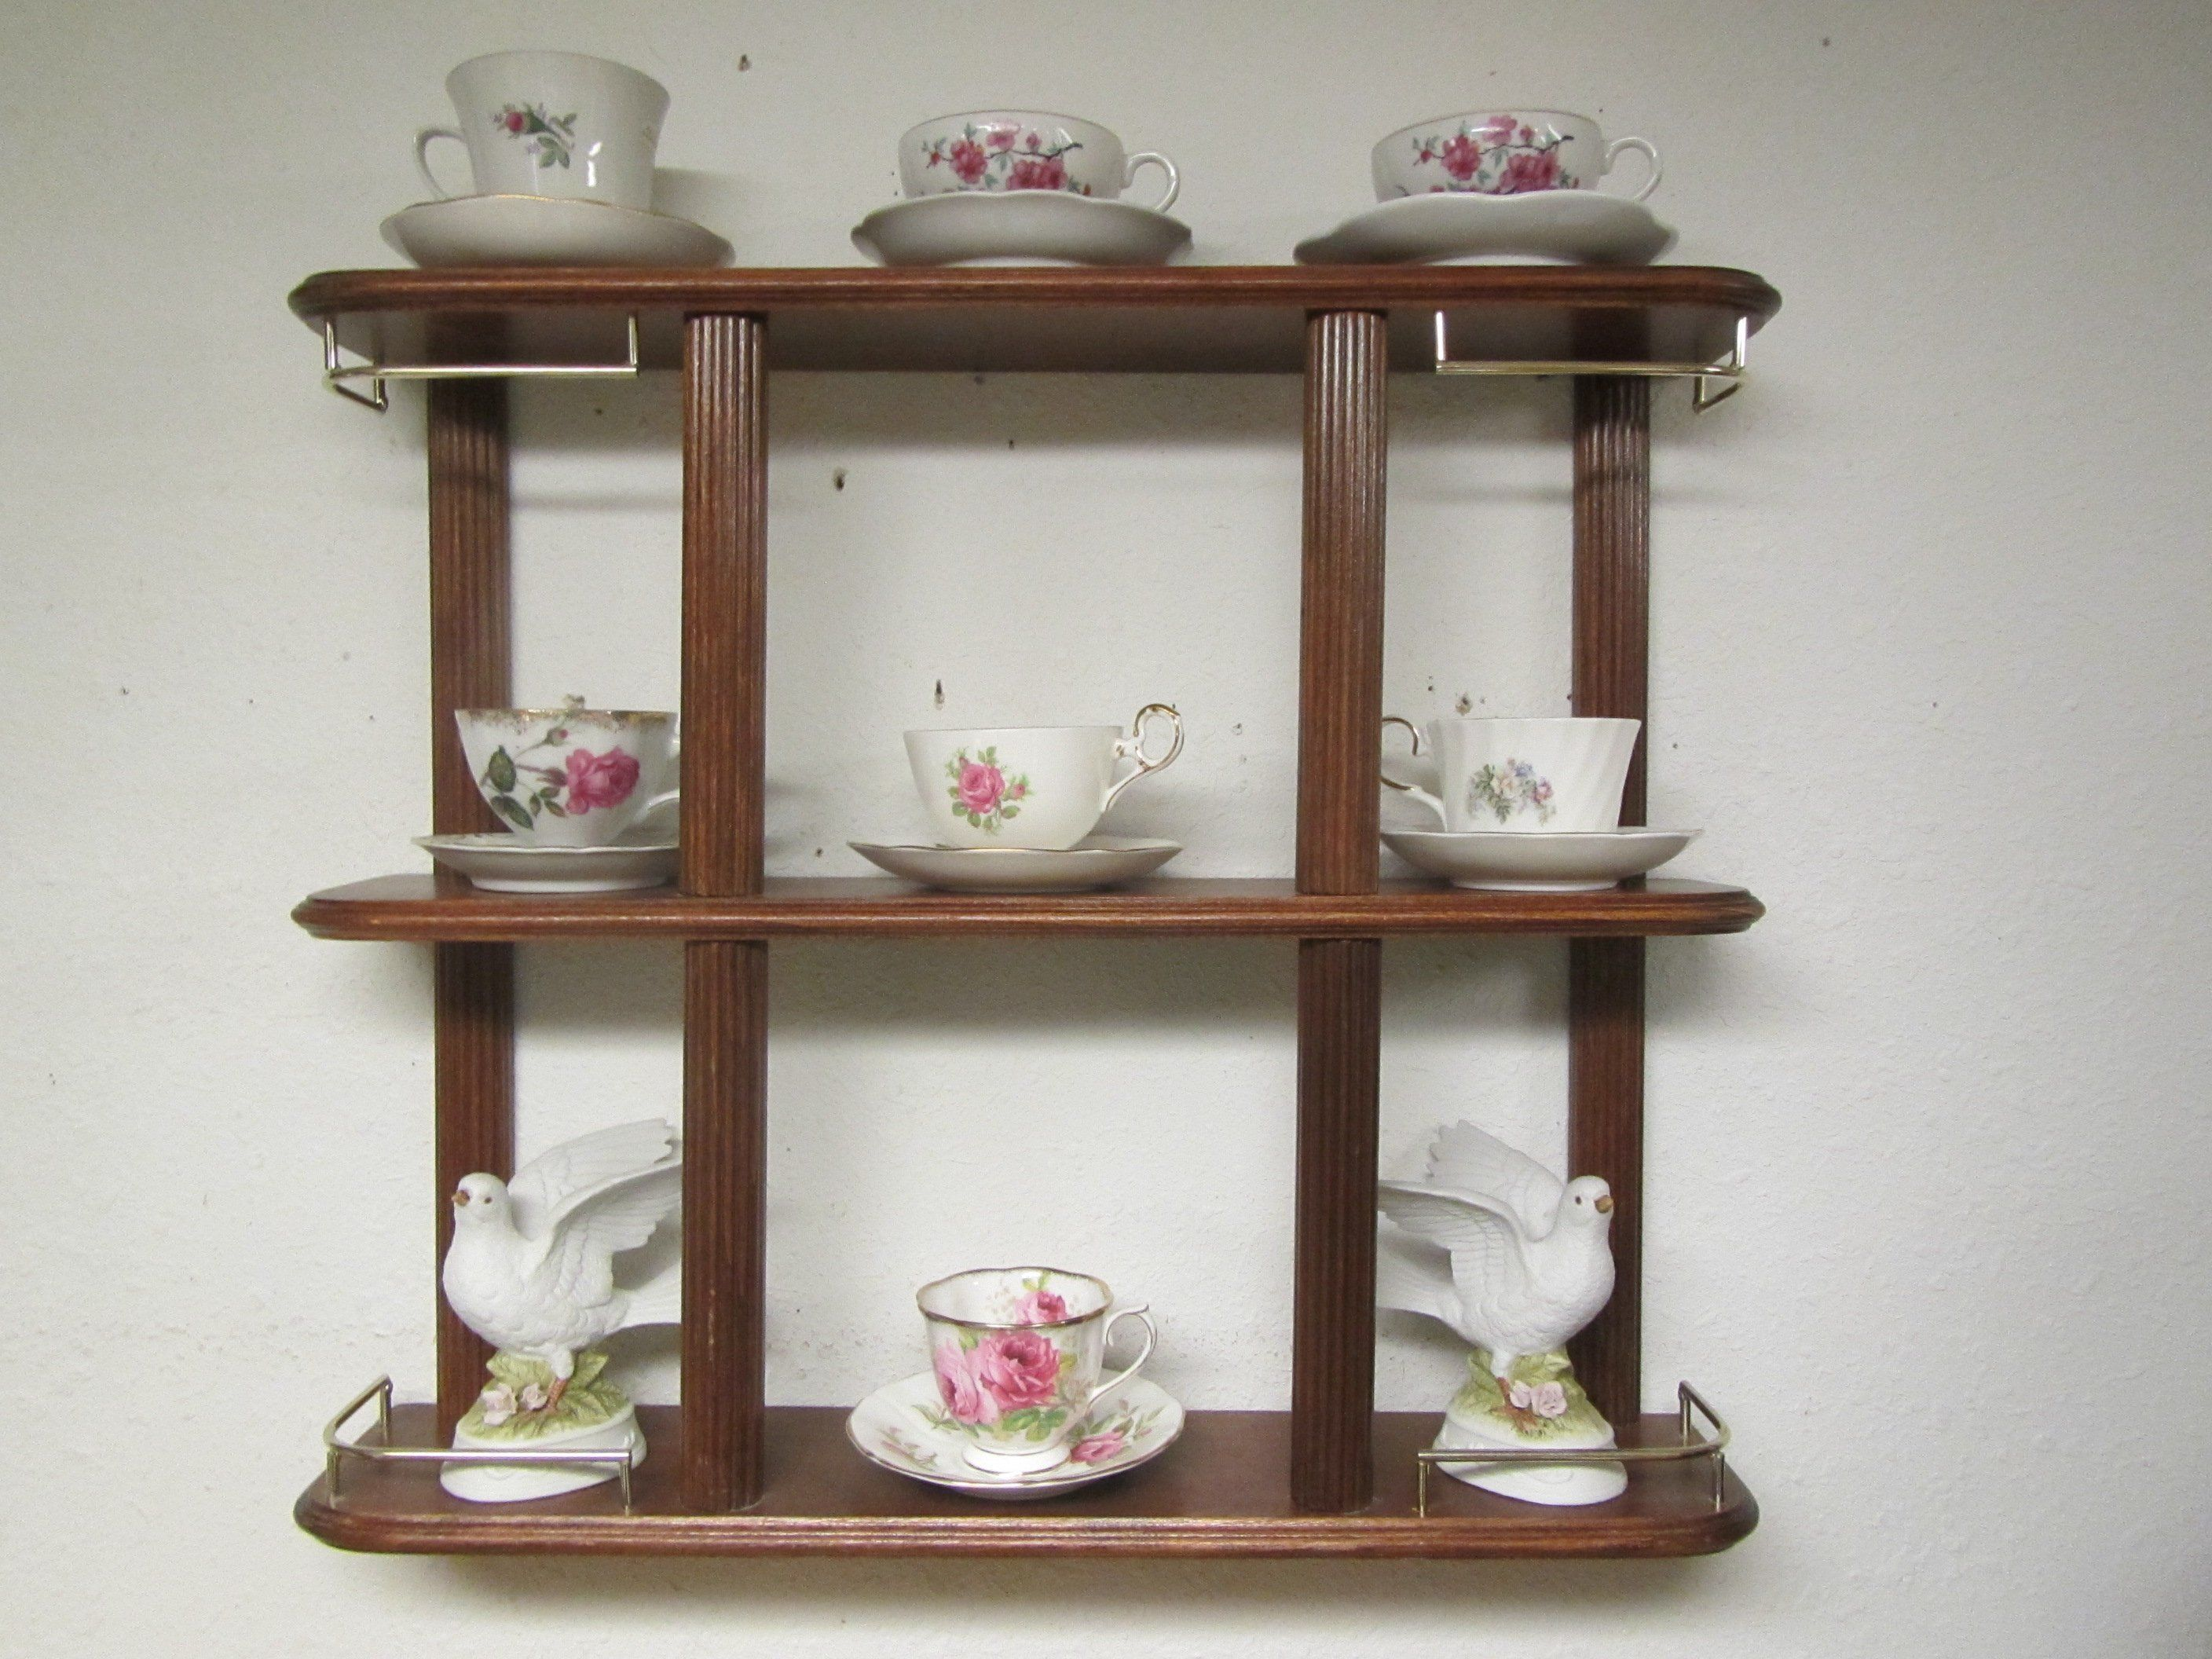 Wood Shelf With Gold Tone Rails , Cup And Saucer